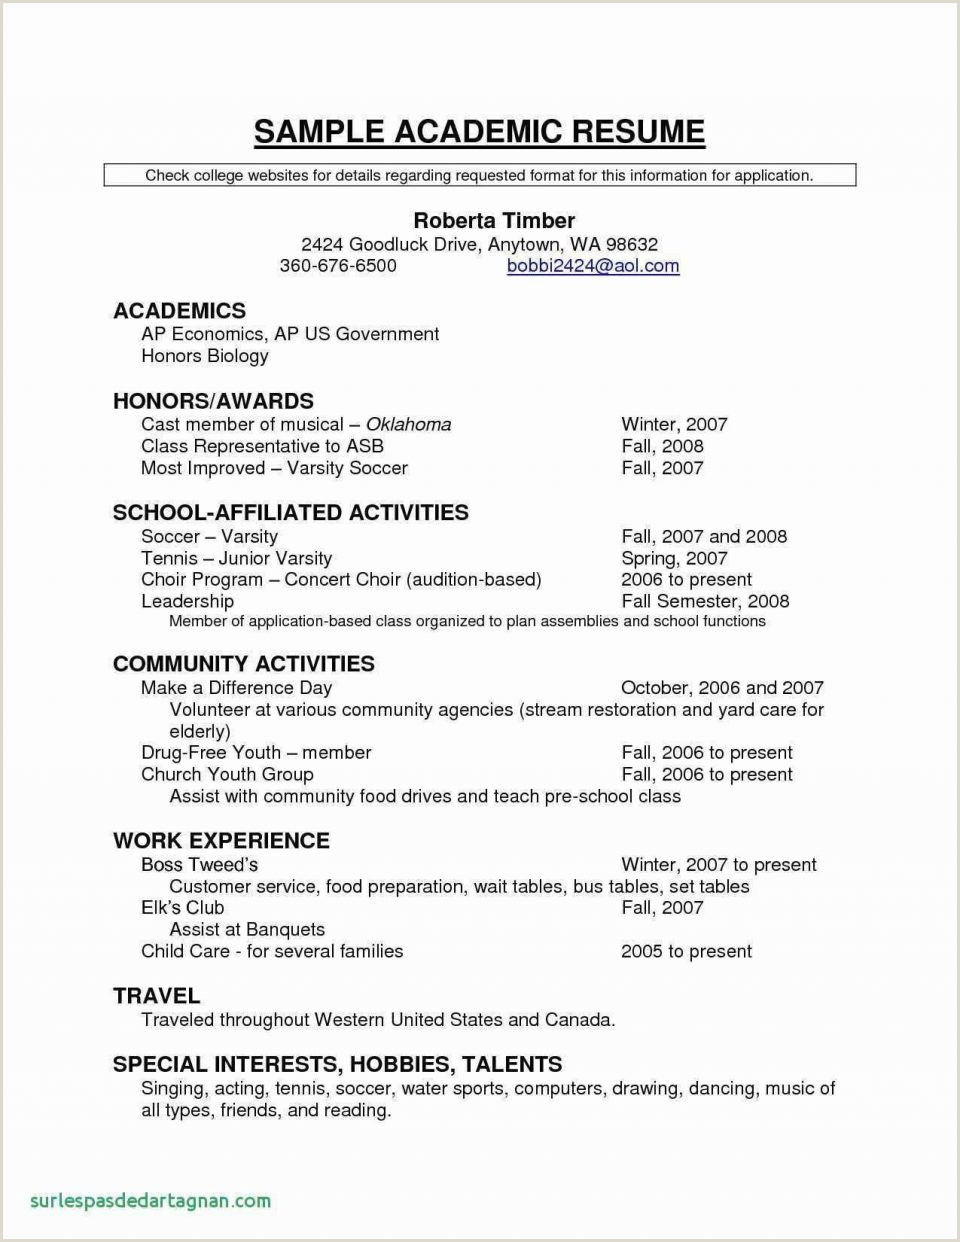 Teacher Resume format In Word Teacher Resume Template Guide 20 Examples for Teaching Jobs